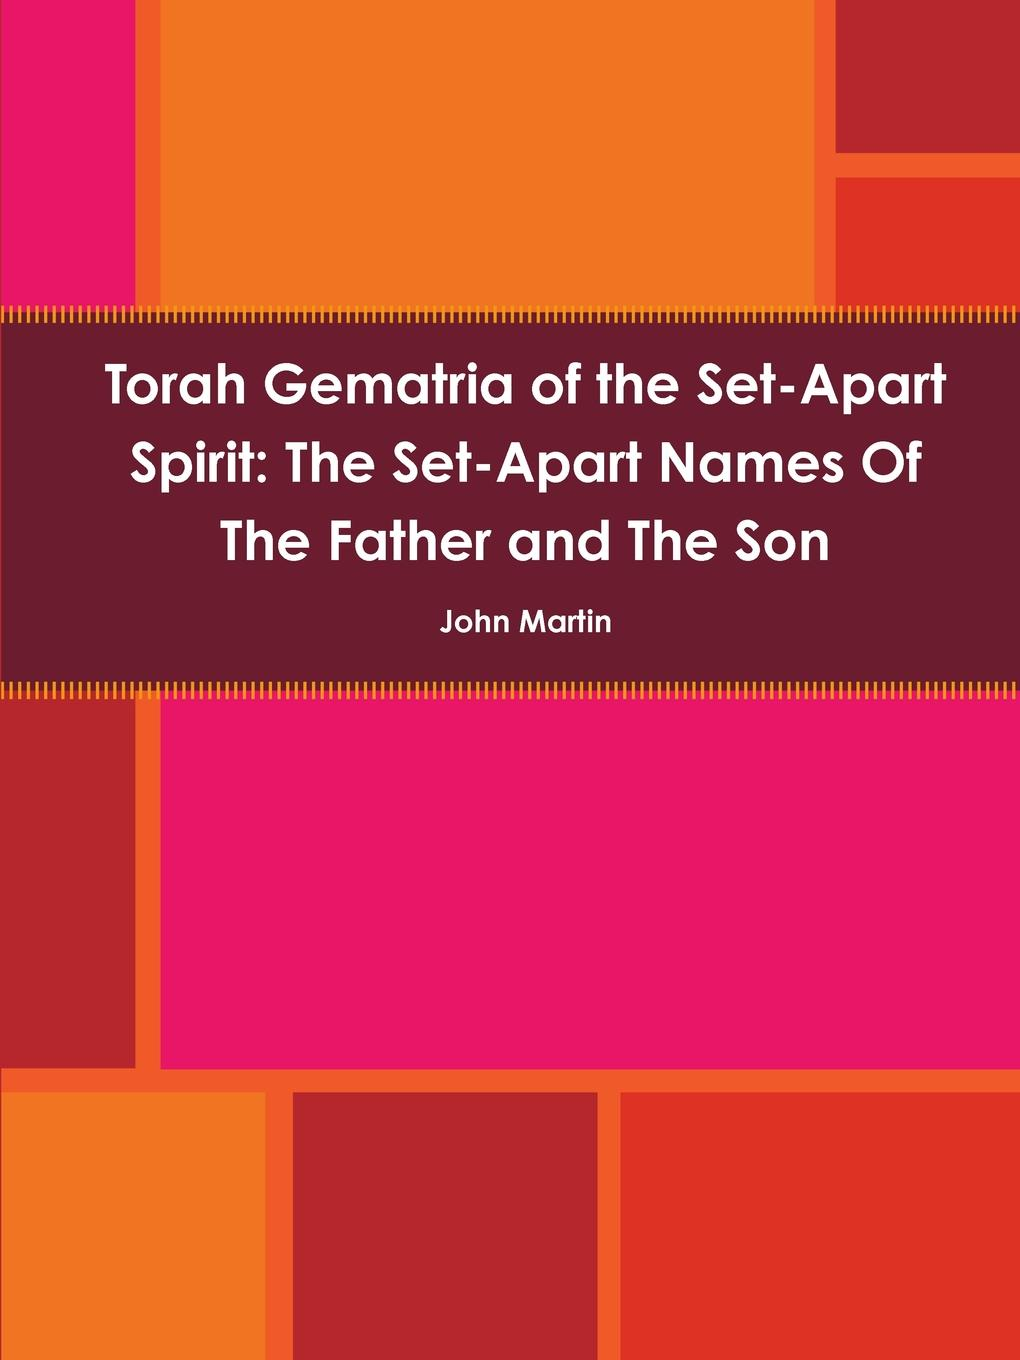 John Martin Torah Gematria of the Set-Apart Spirit. The Set-Apart Names of the Father and the Son marti l berger the father wears son glasses the rhyme and reason for everything